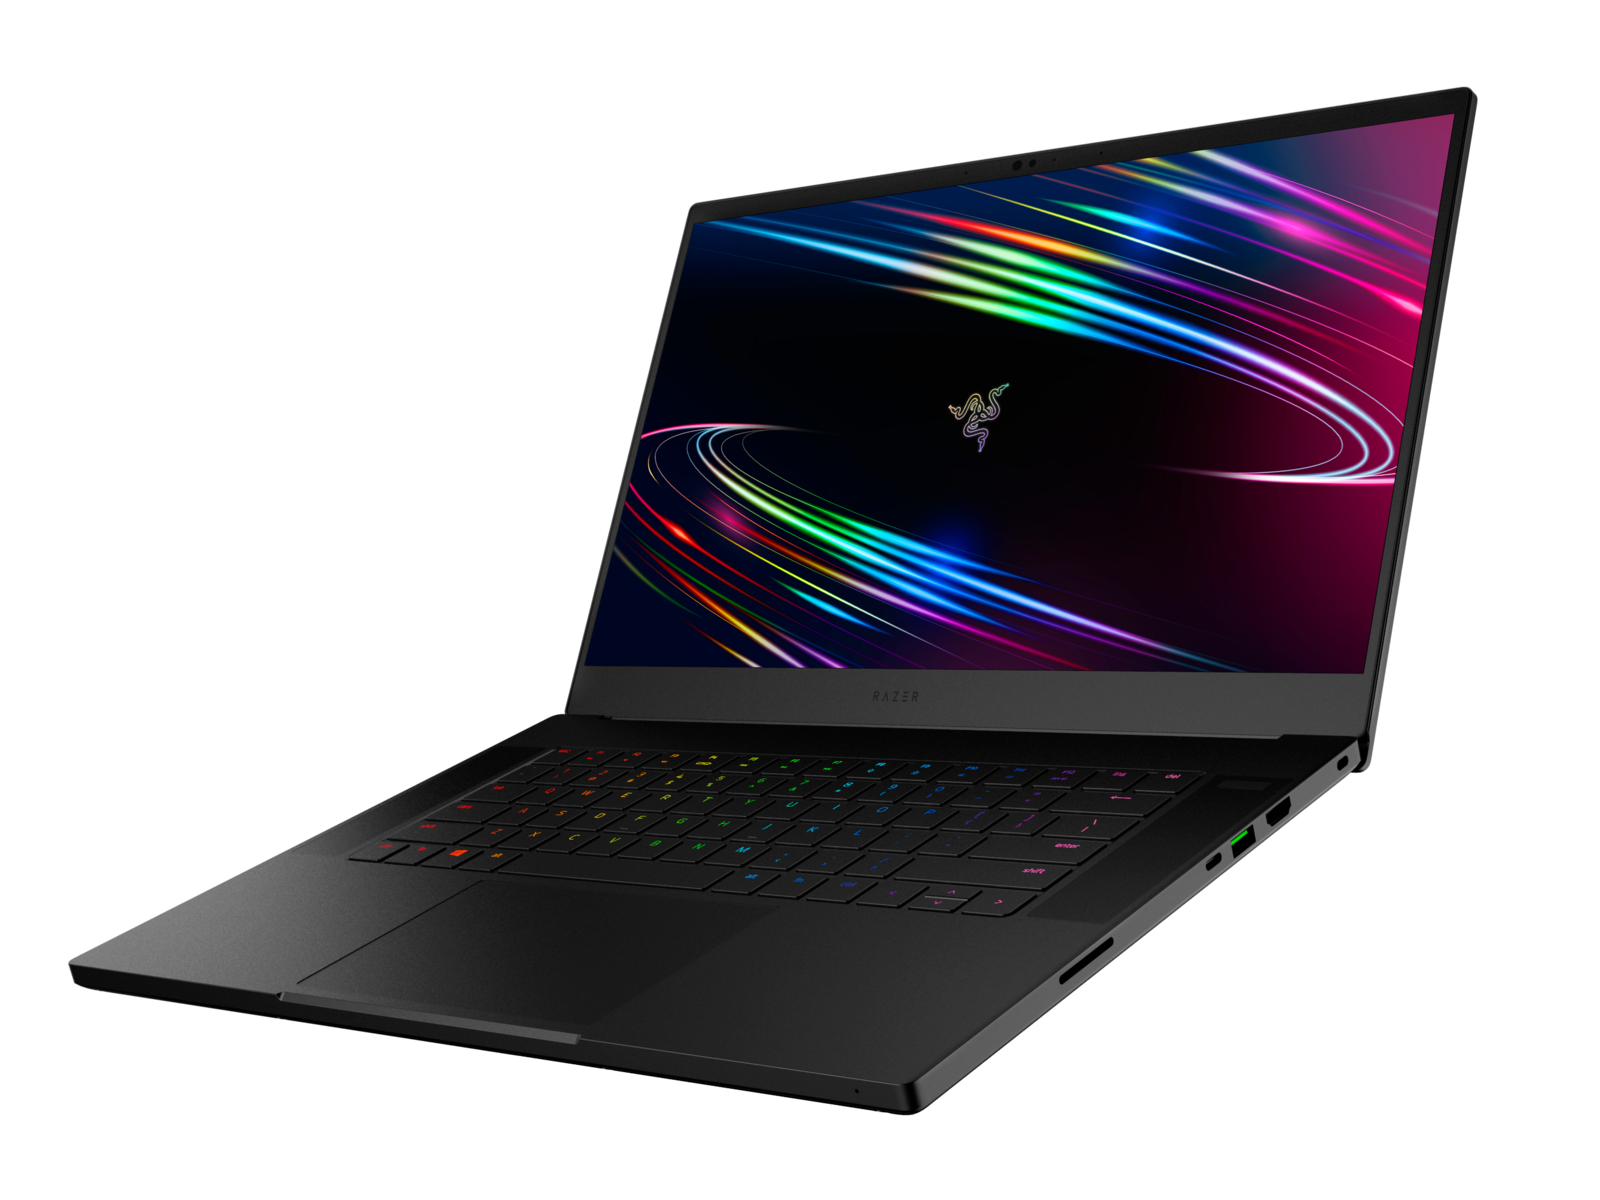 Nvidia Announces RTX Super Mobile GPUs for Gaming Laptops